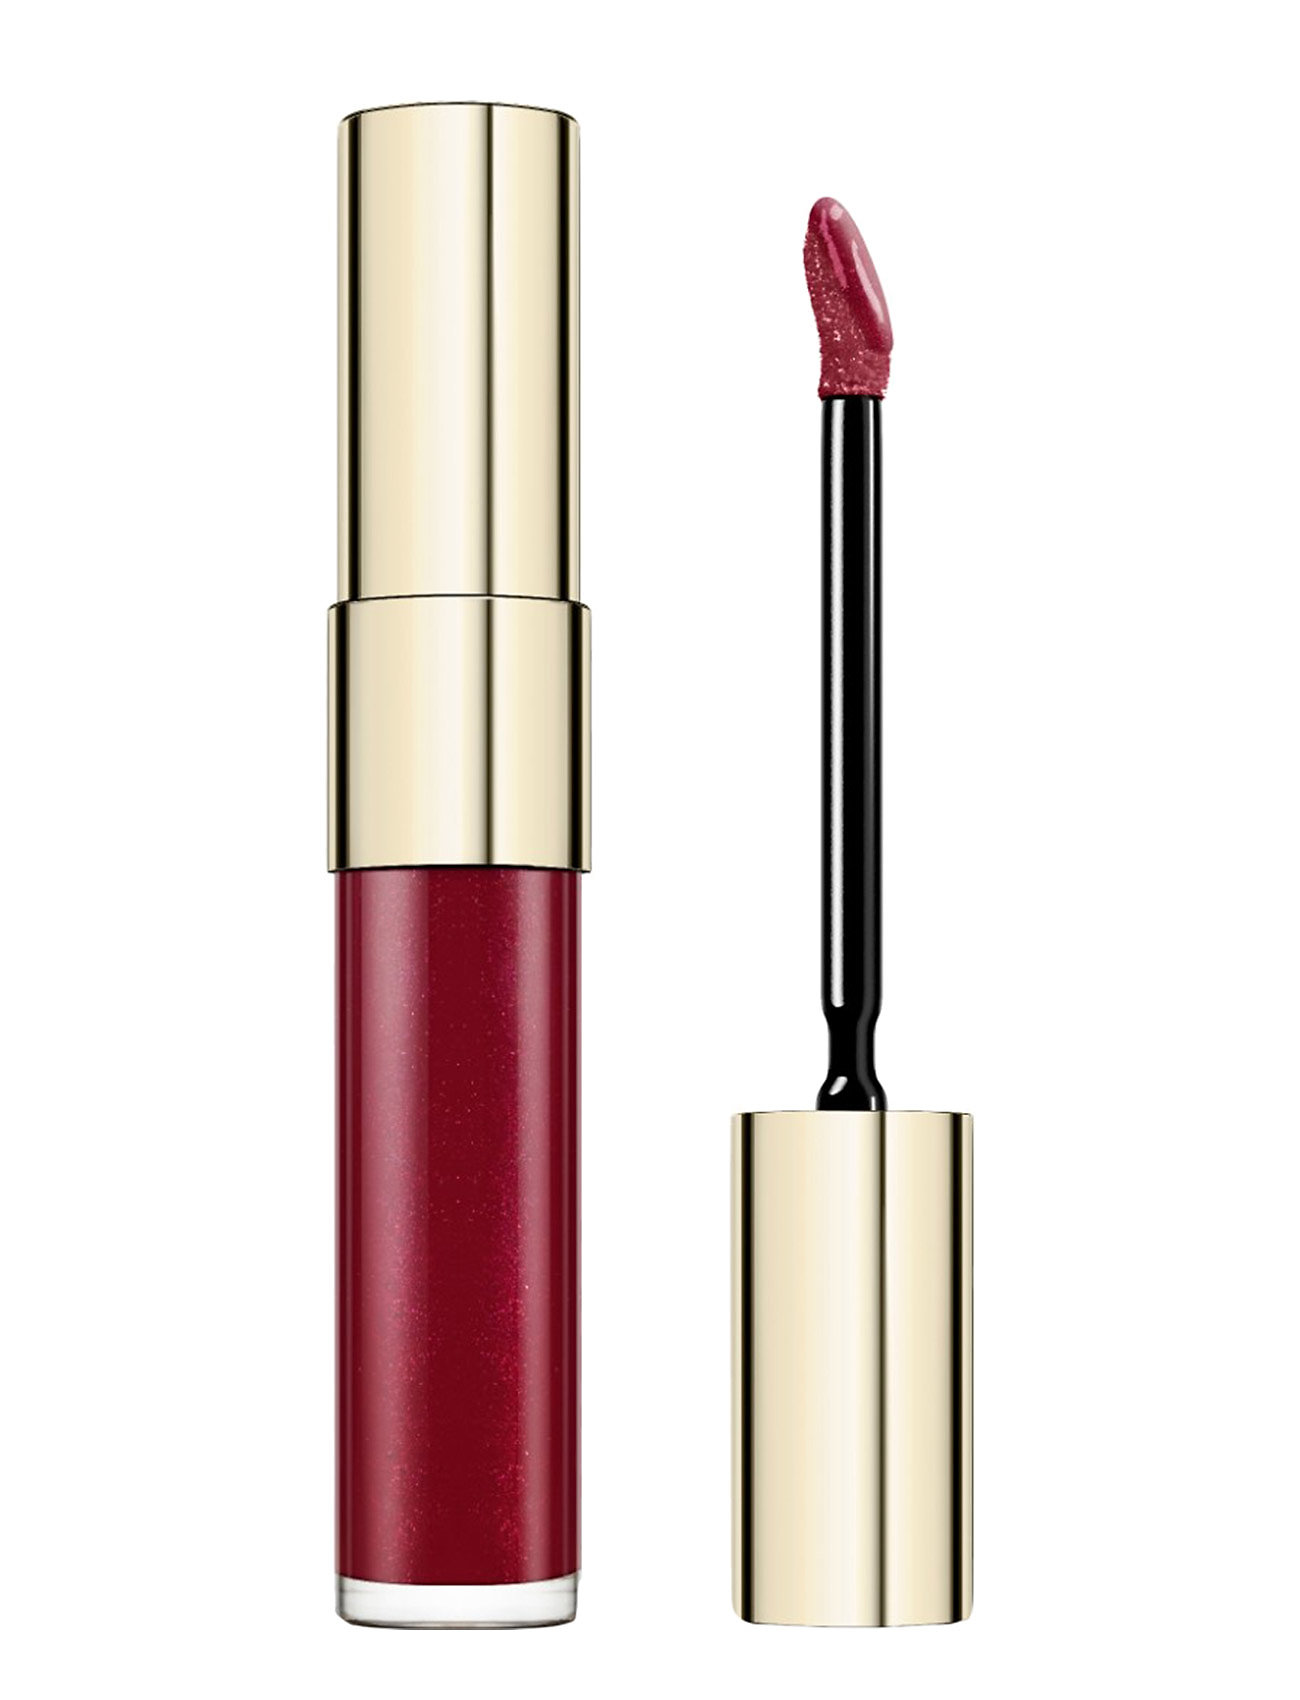 Image of Illumination Lips 06 Lipgloss Makeup Rød Helena Rubinstein (3082510515)